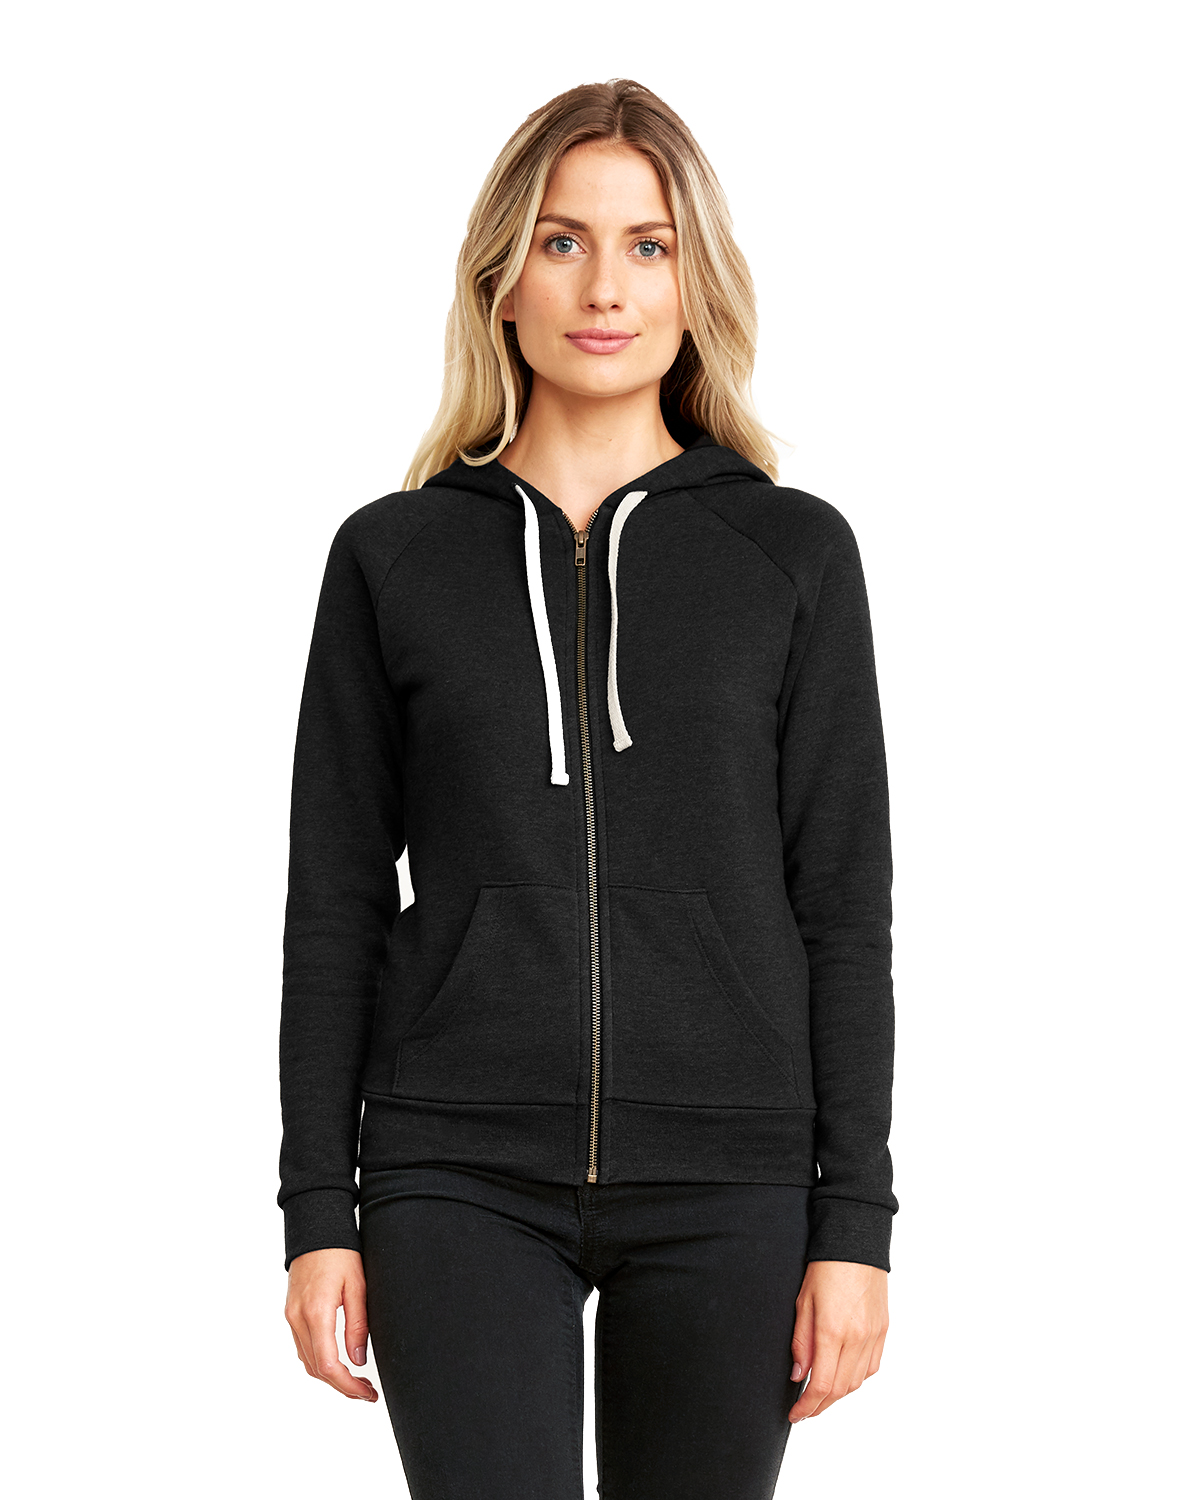 Next Level Apparel 9603 - Ladies PCH Raglan Zip Hoody